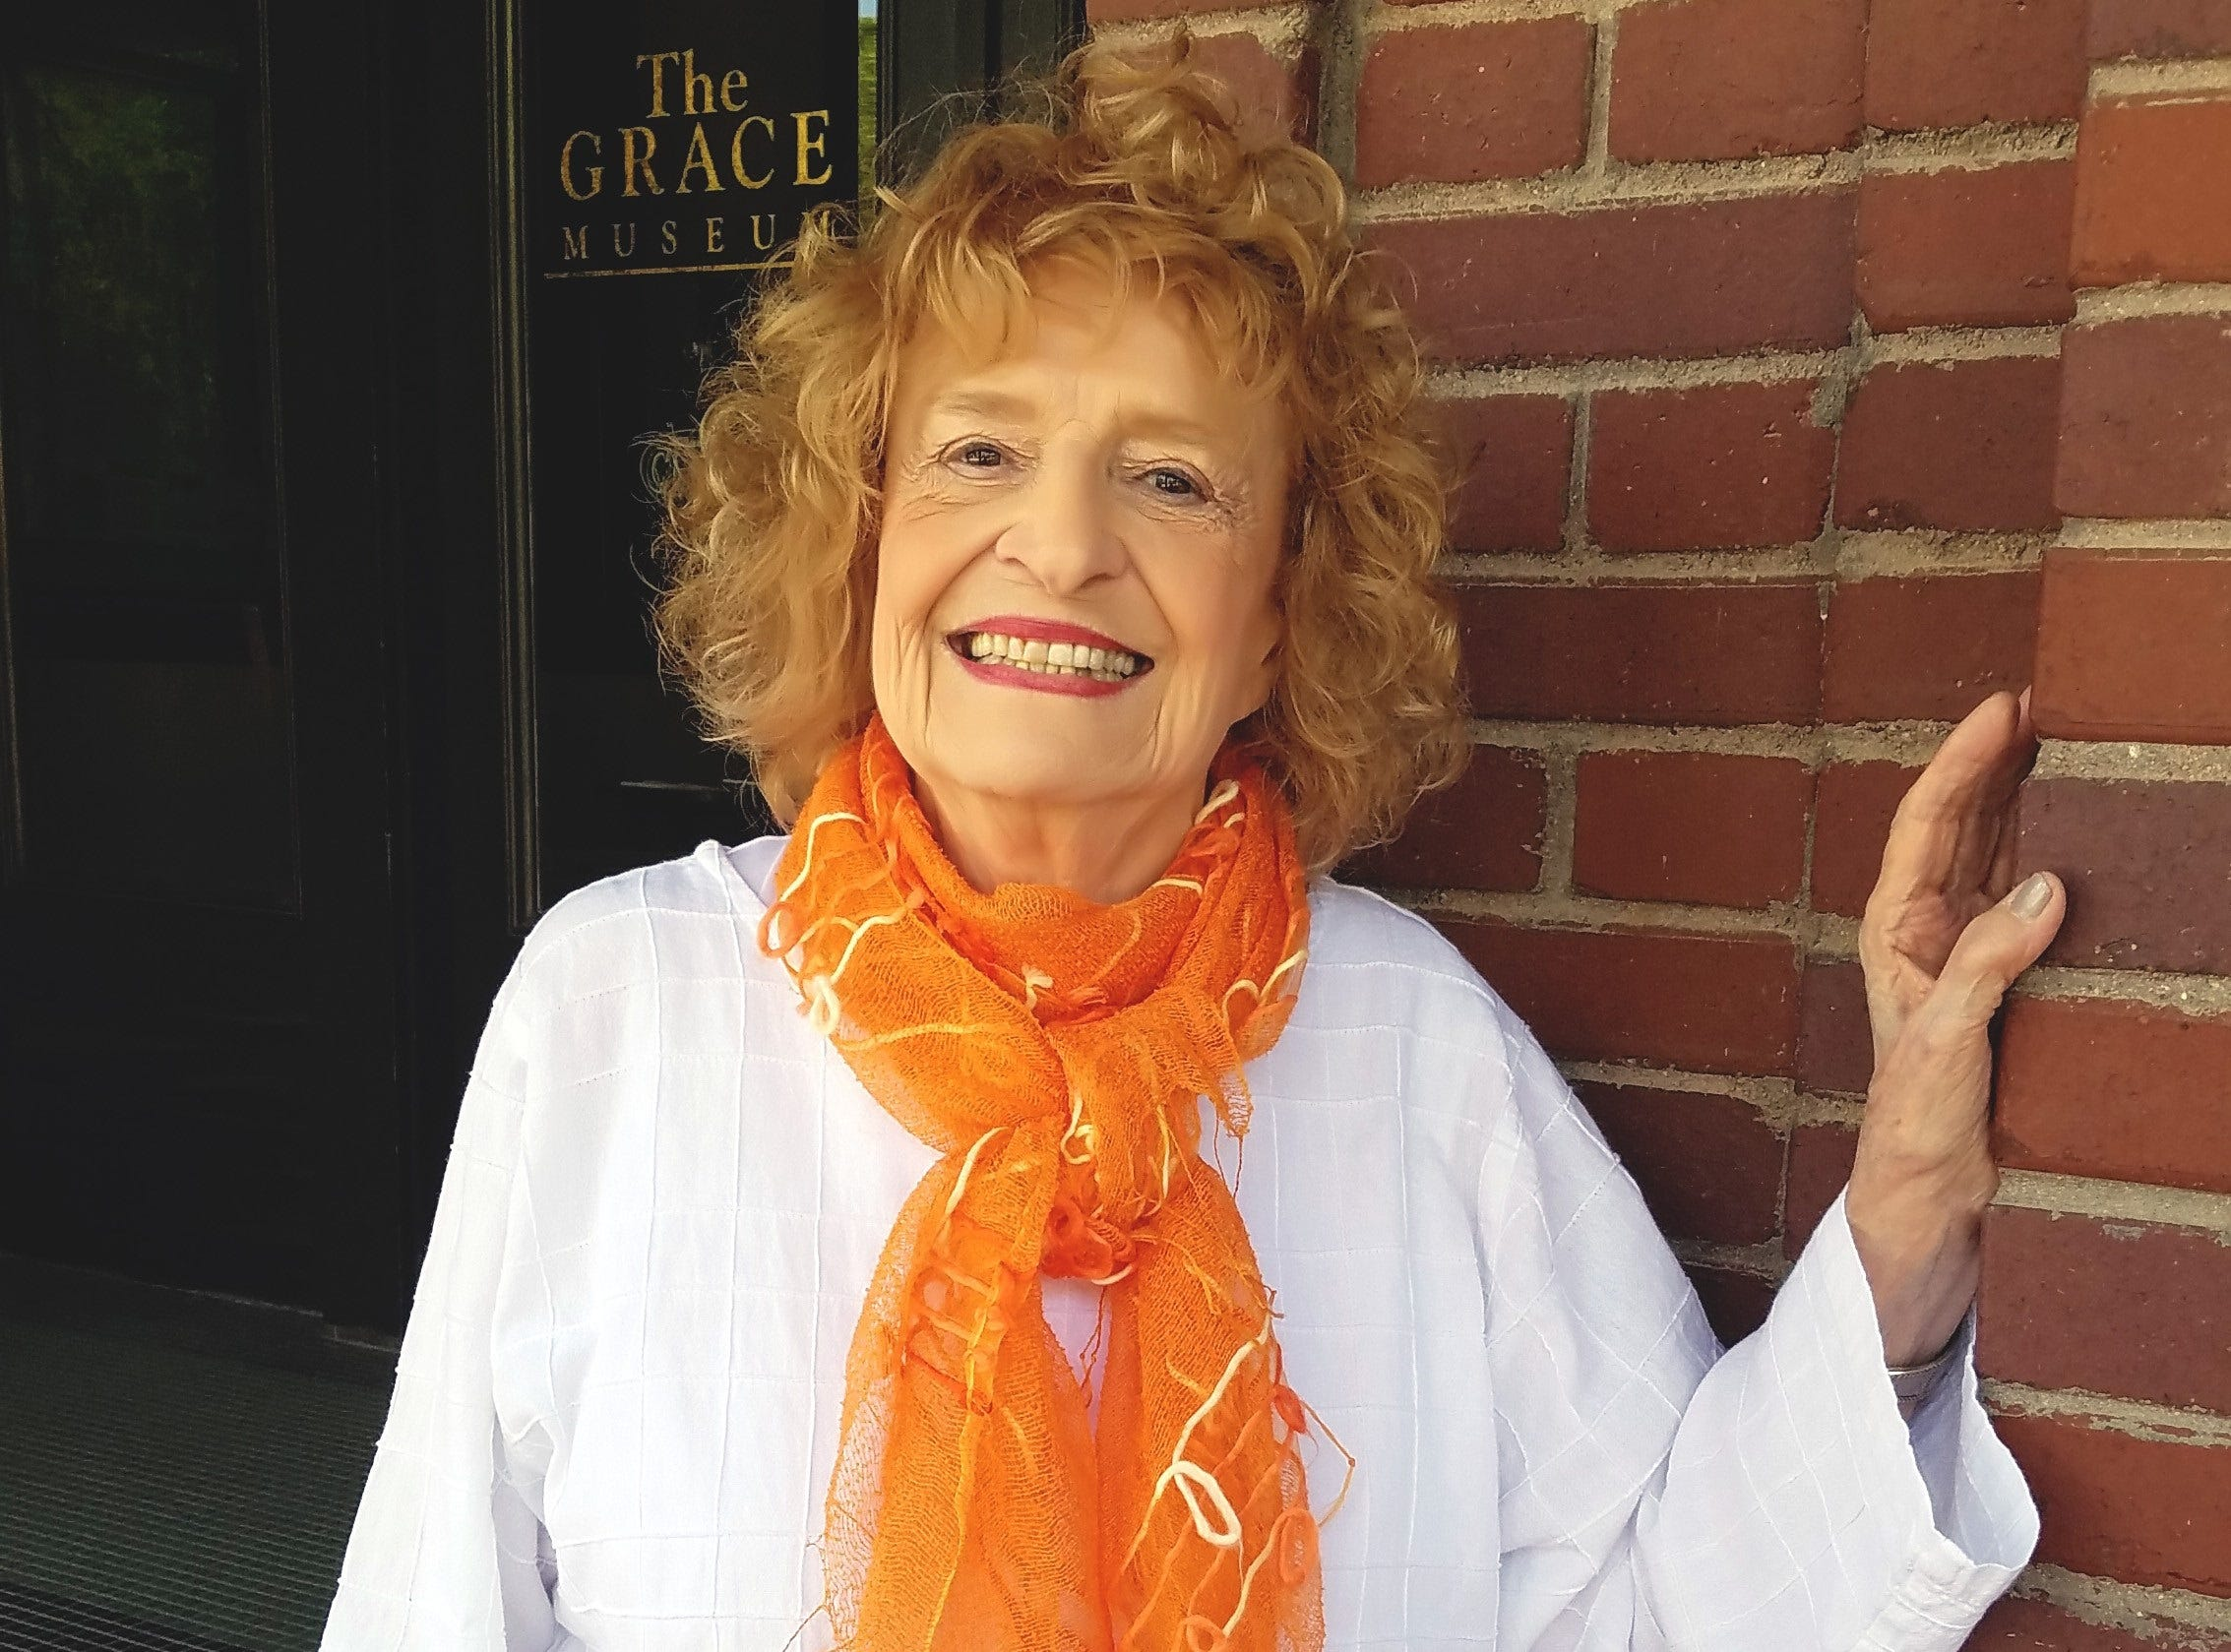 Martha Kiel, outside The Grace Museum, where she took students as an art teacher and later has served as a board member.